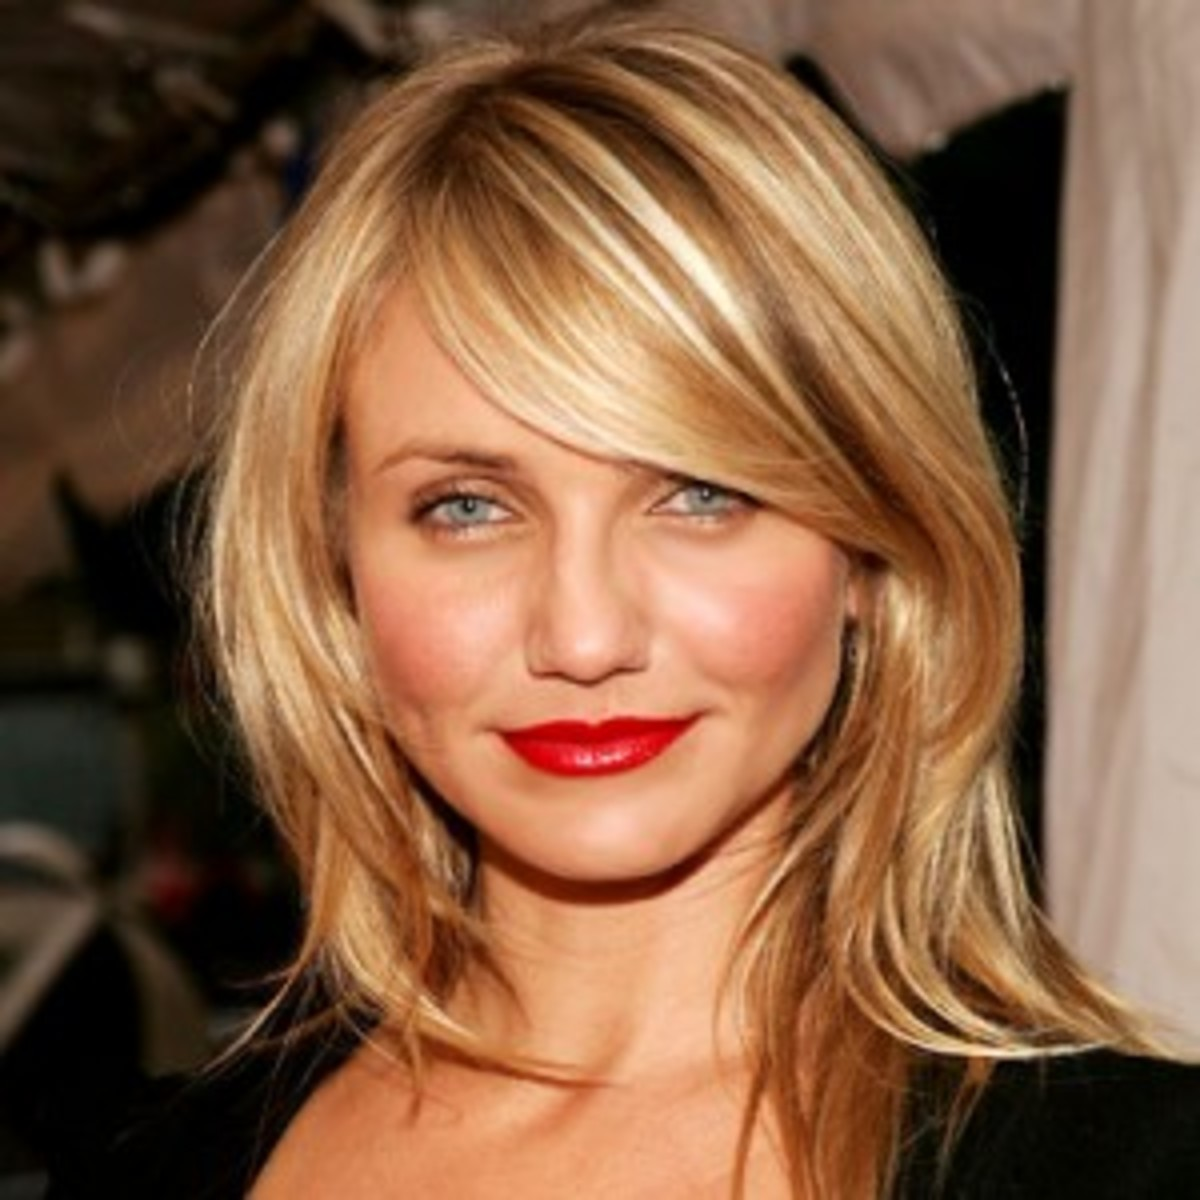 Cameron Diaz has a round face.  Her bangs and straight hair are very flattering for round faces.